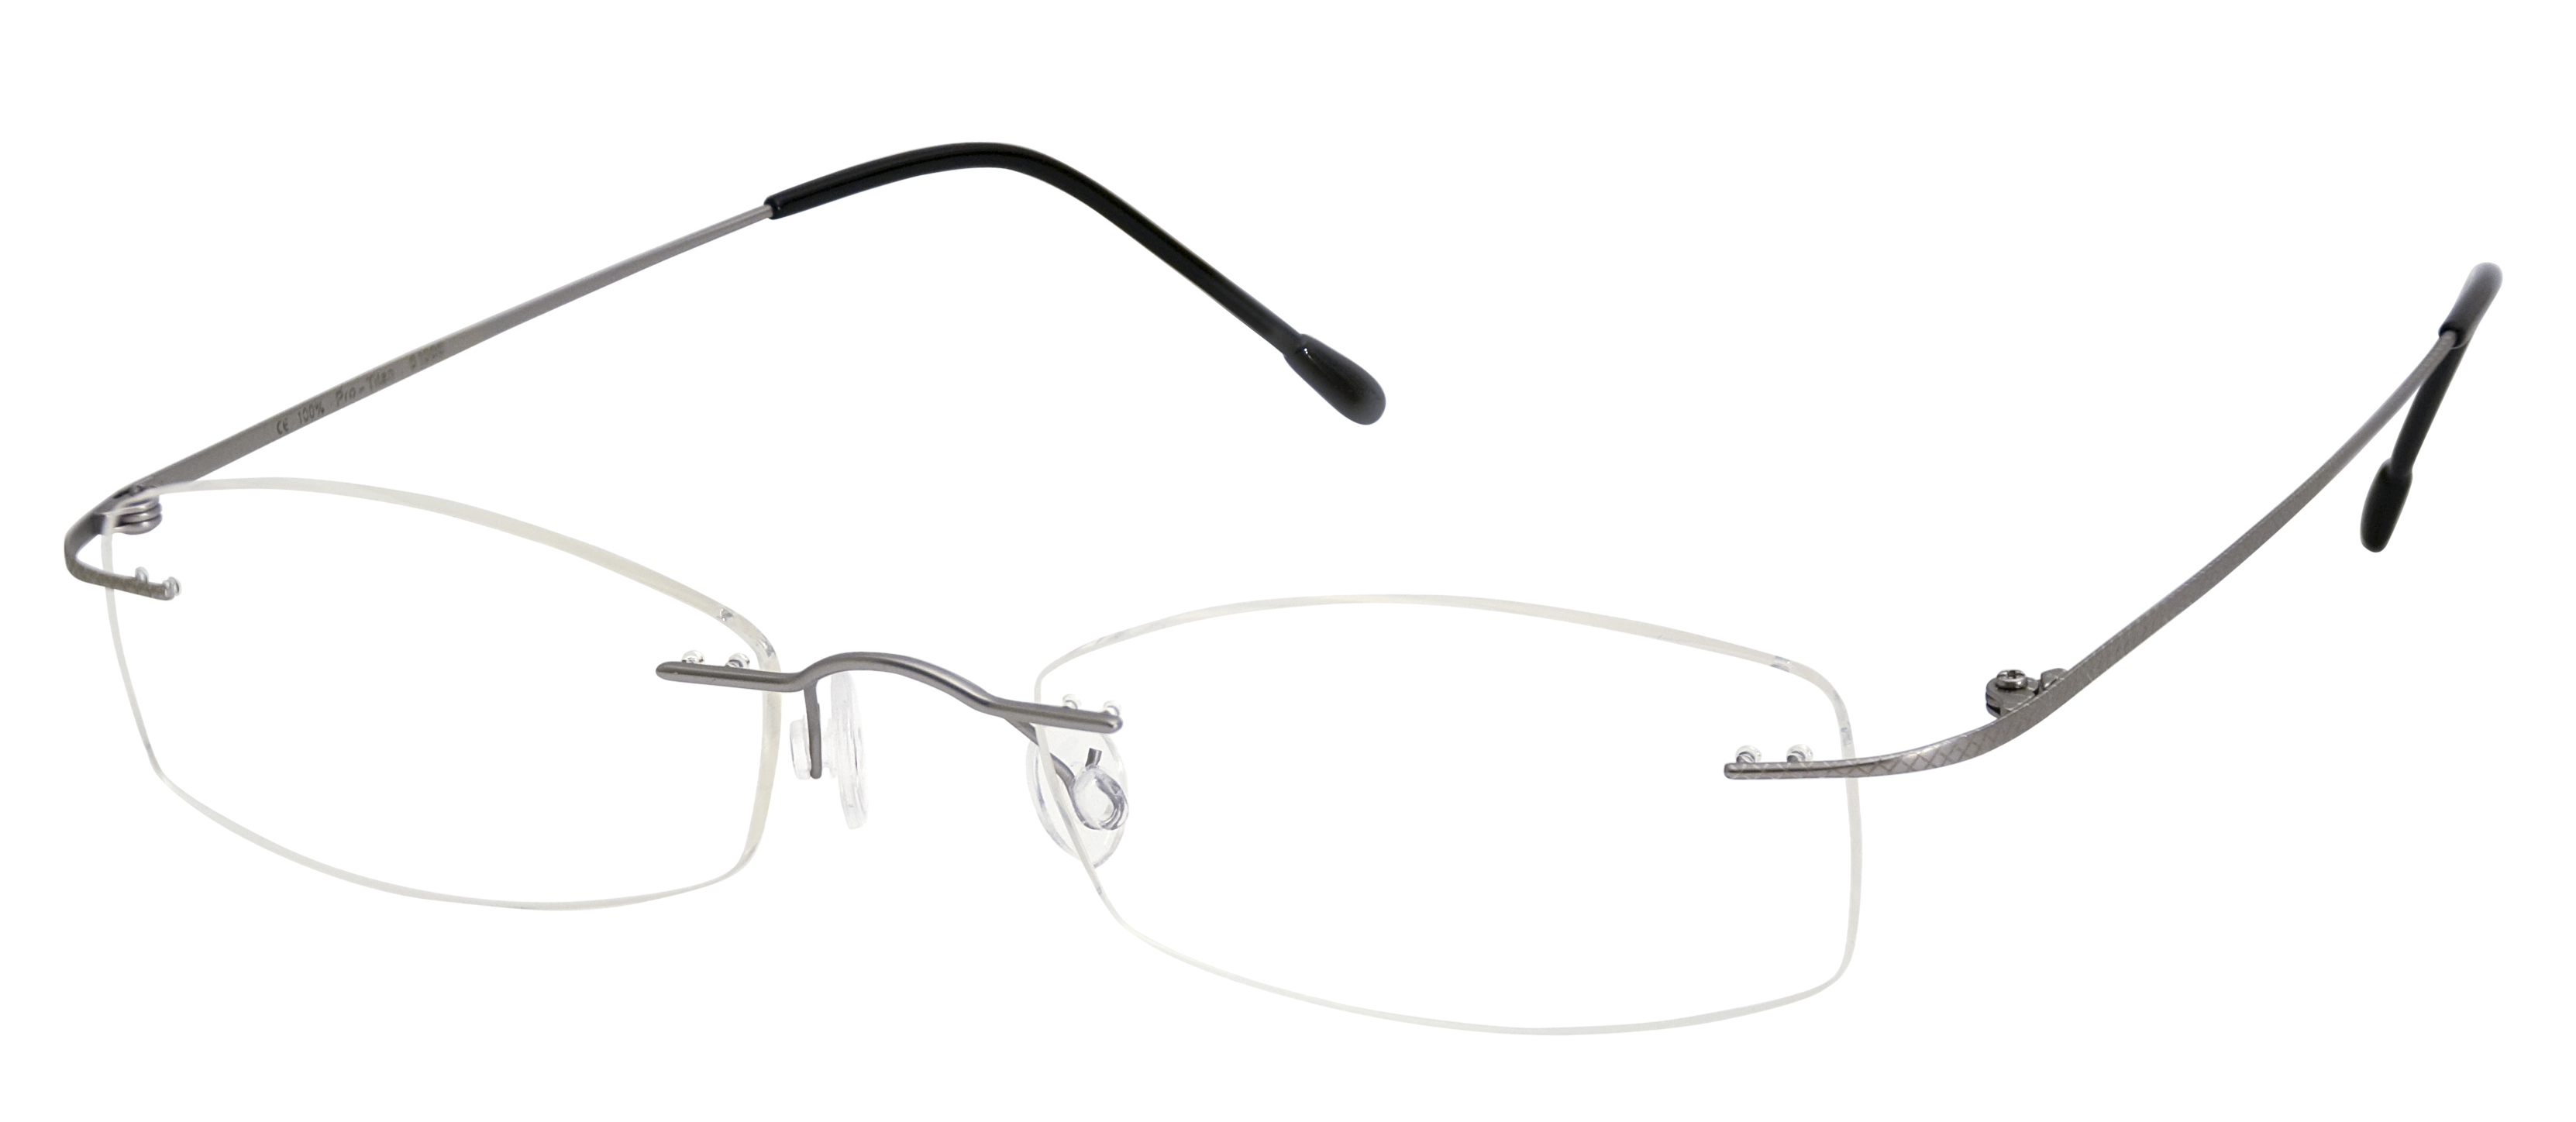 rimless eyeglasses wikipedia